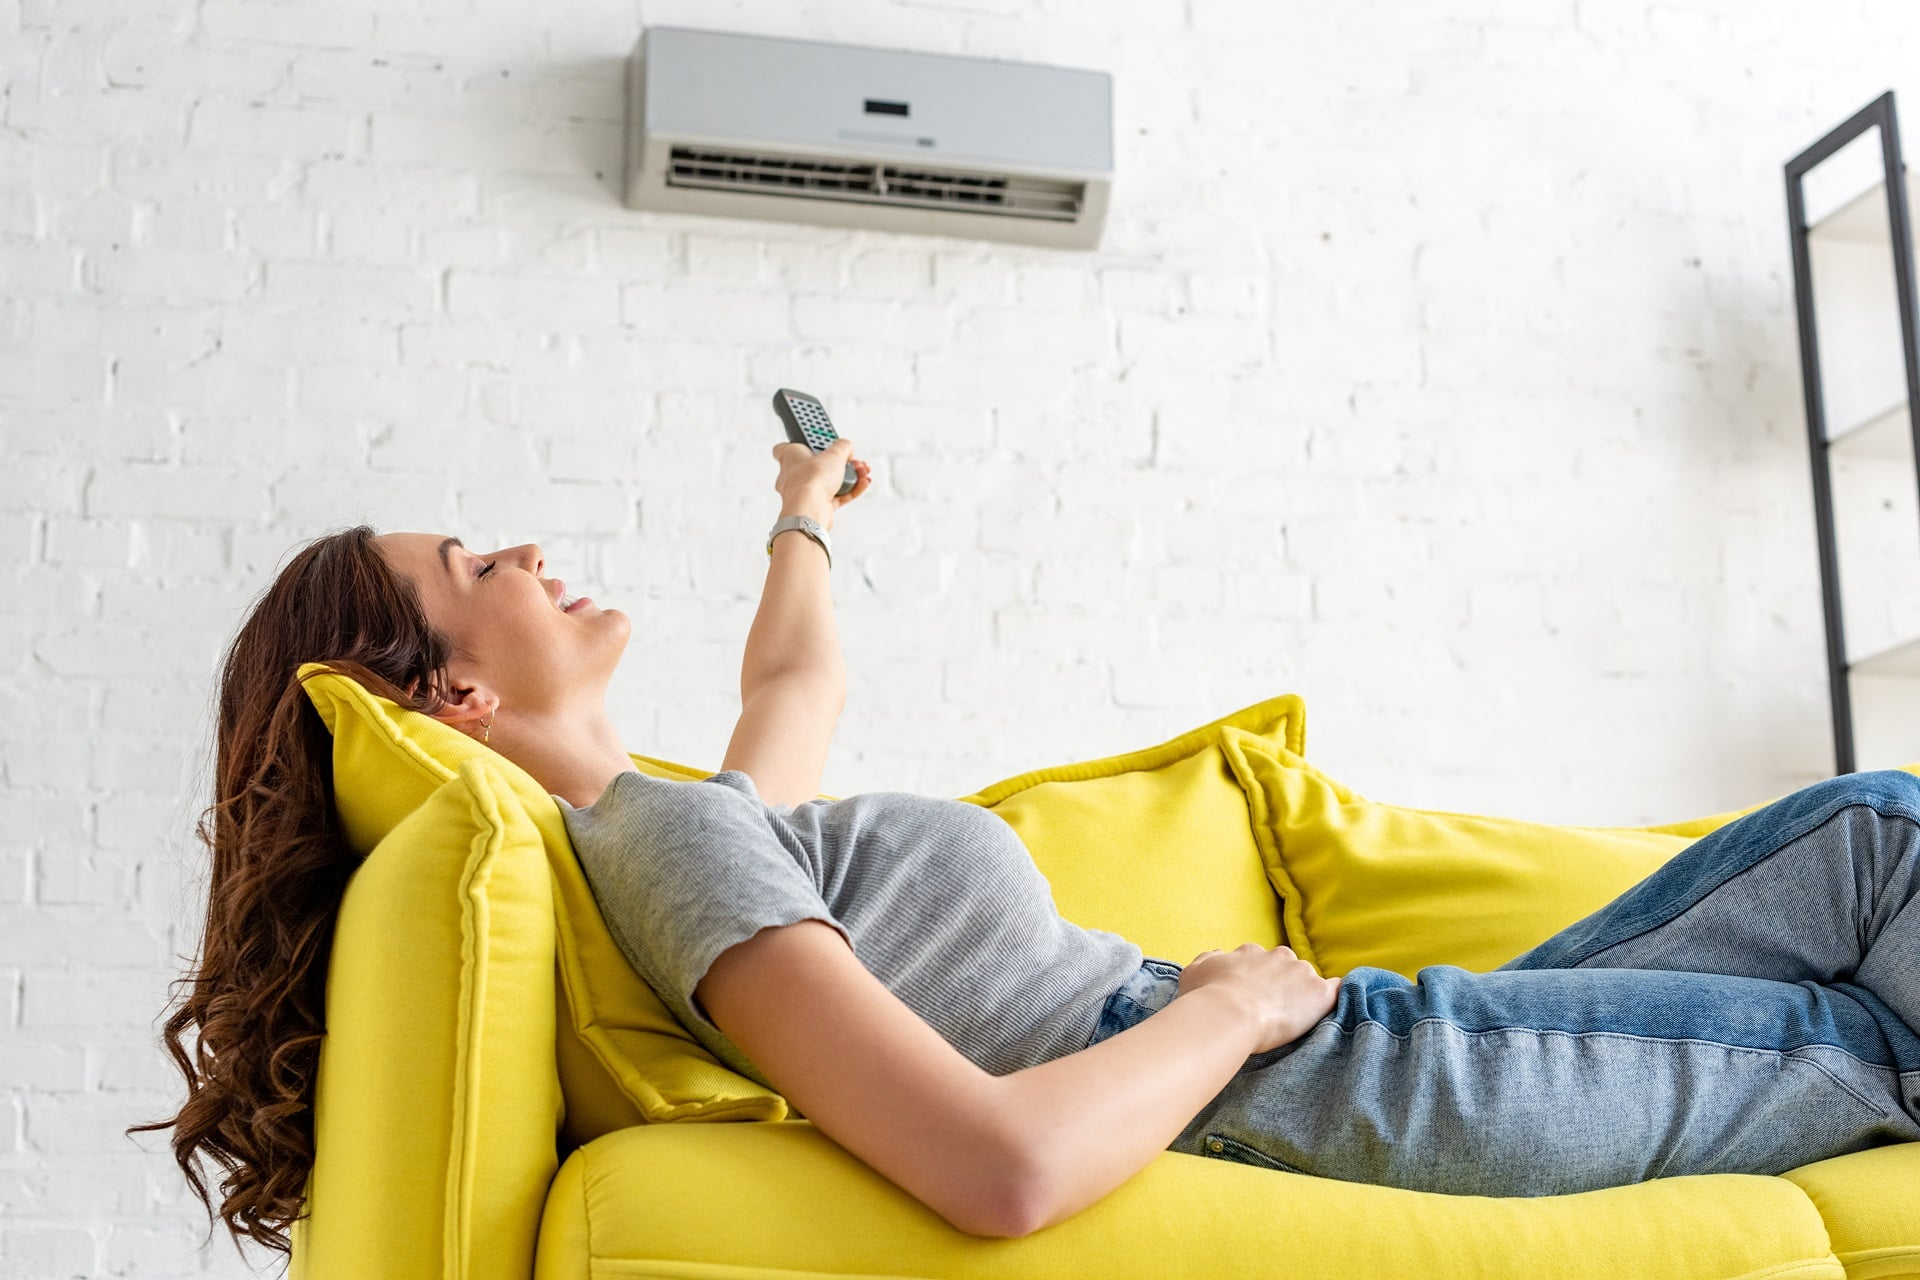 air conditioning systems